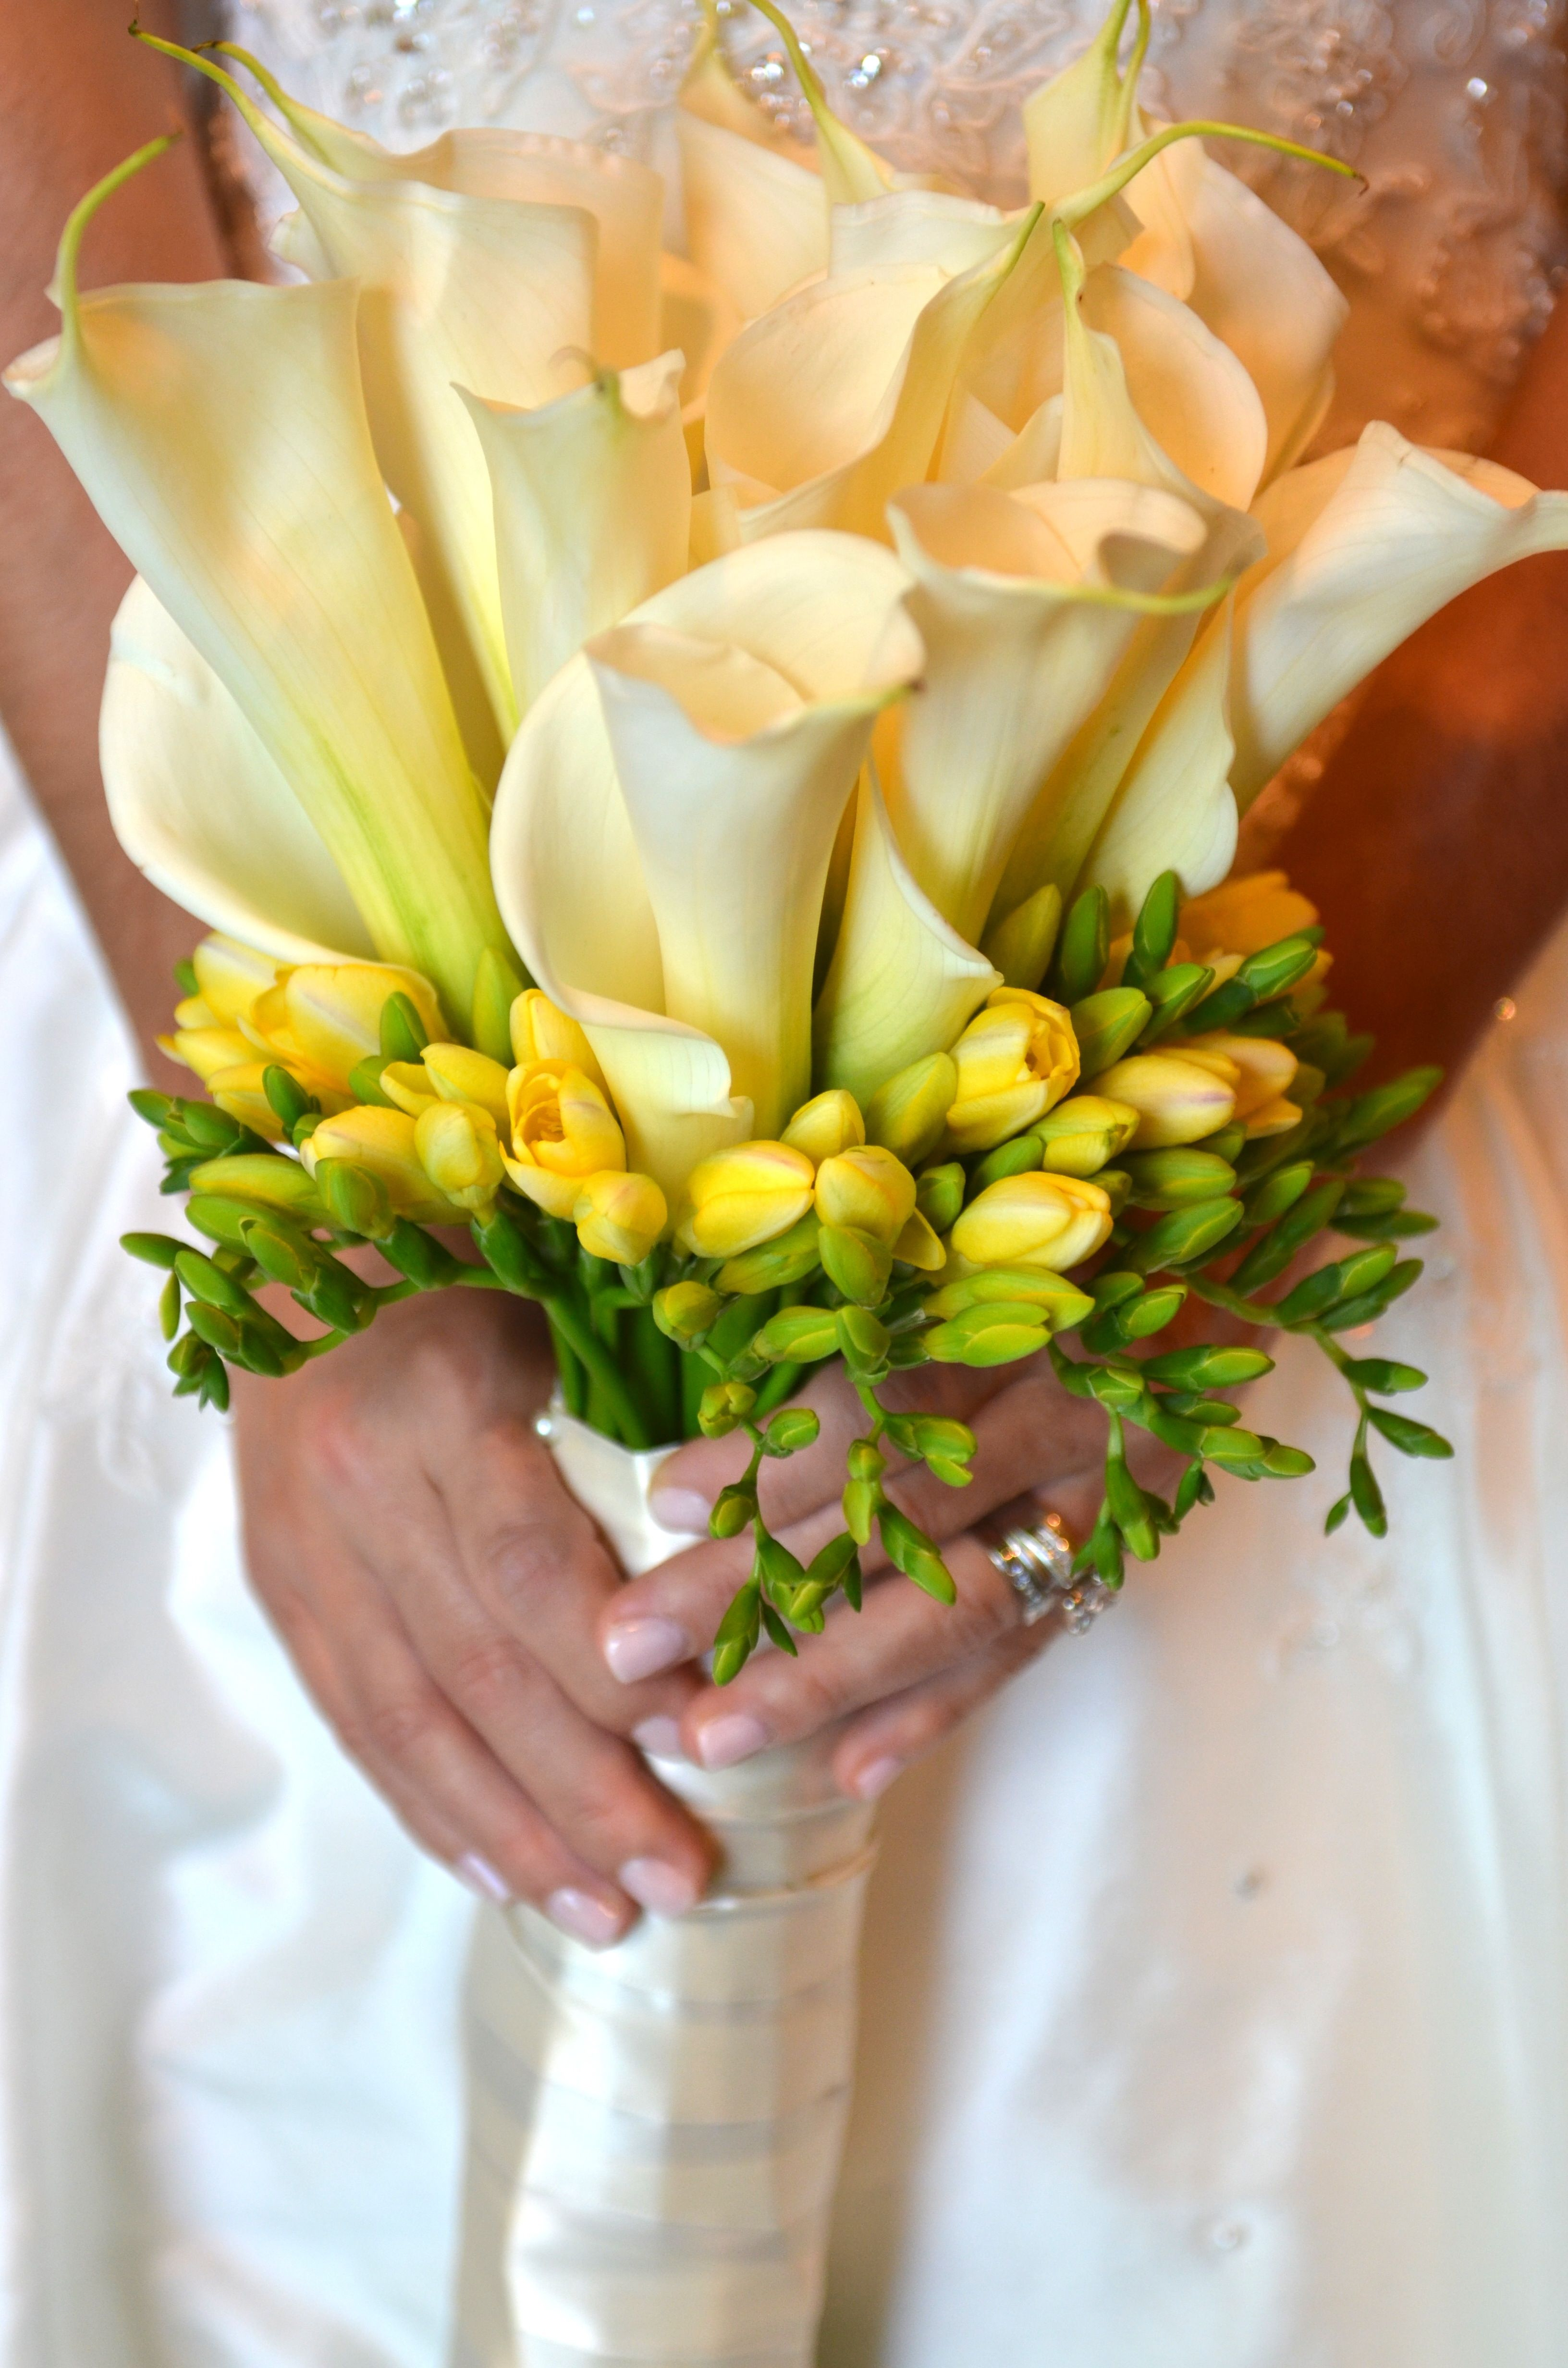 Bridal Bouquet With Full Size Calla Lilies And Yellow Freesia Twigs Branches Floral Www Calla Lily Bouquet Wedding Calla Lily Beach Wedding Decorations Diy